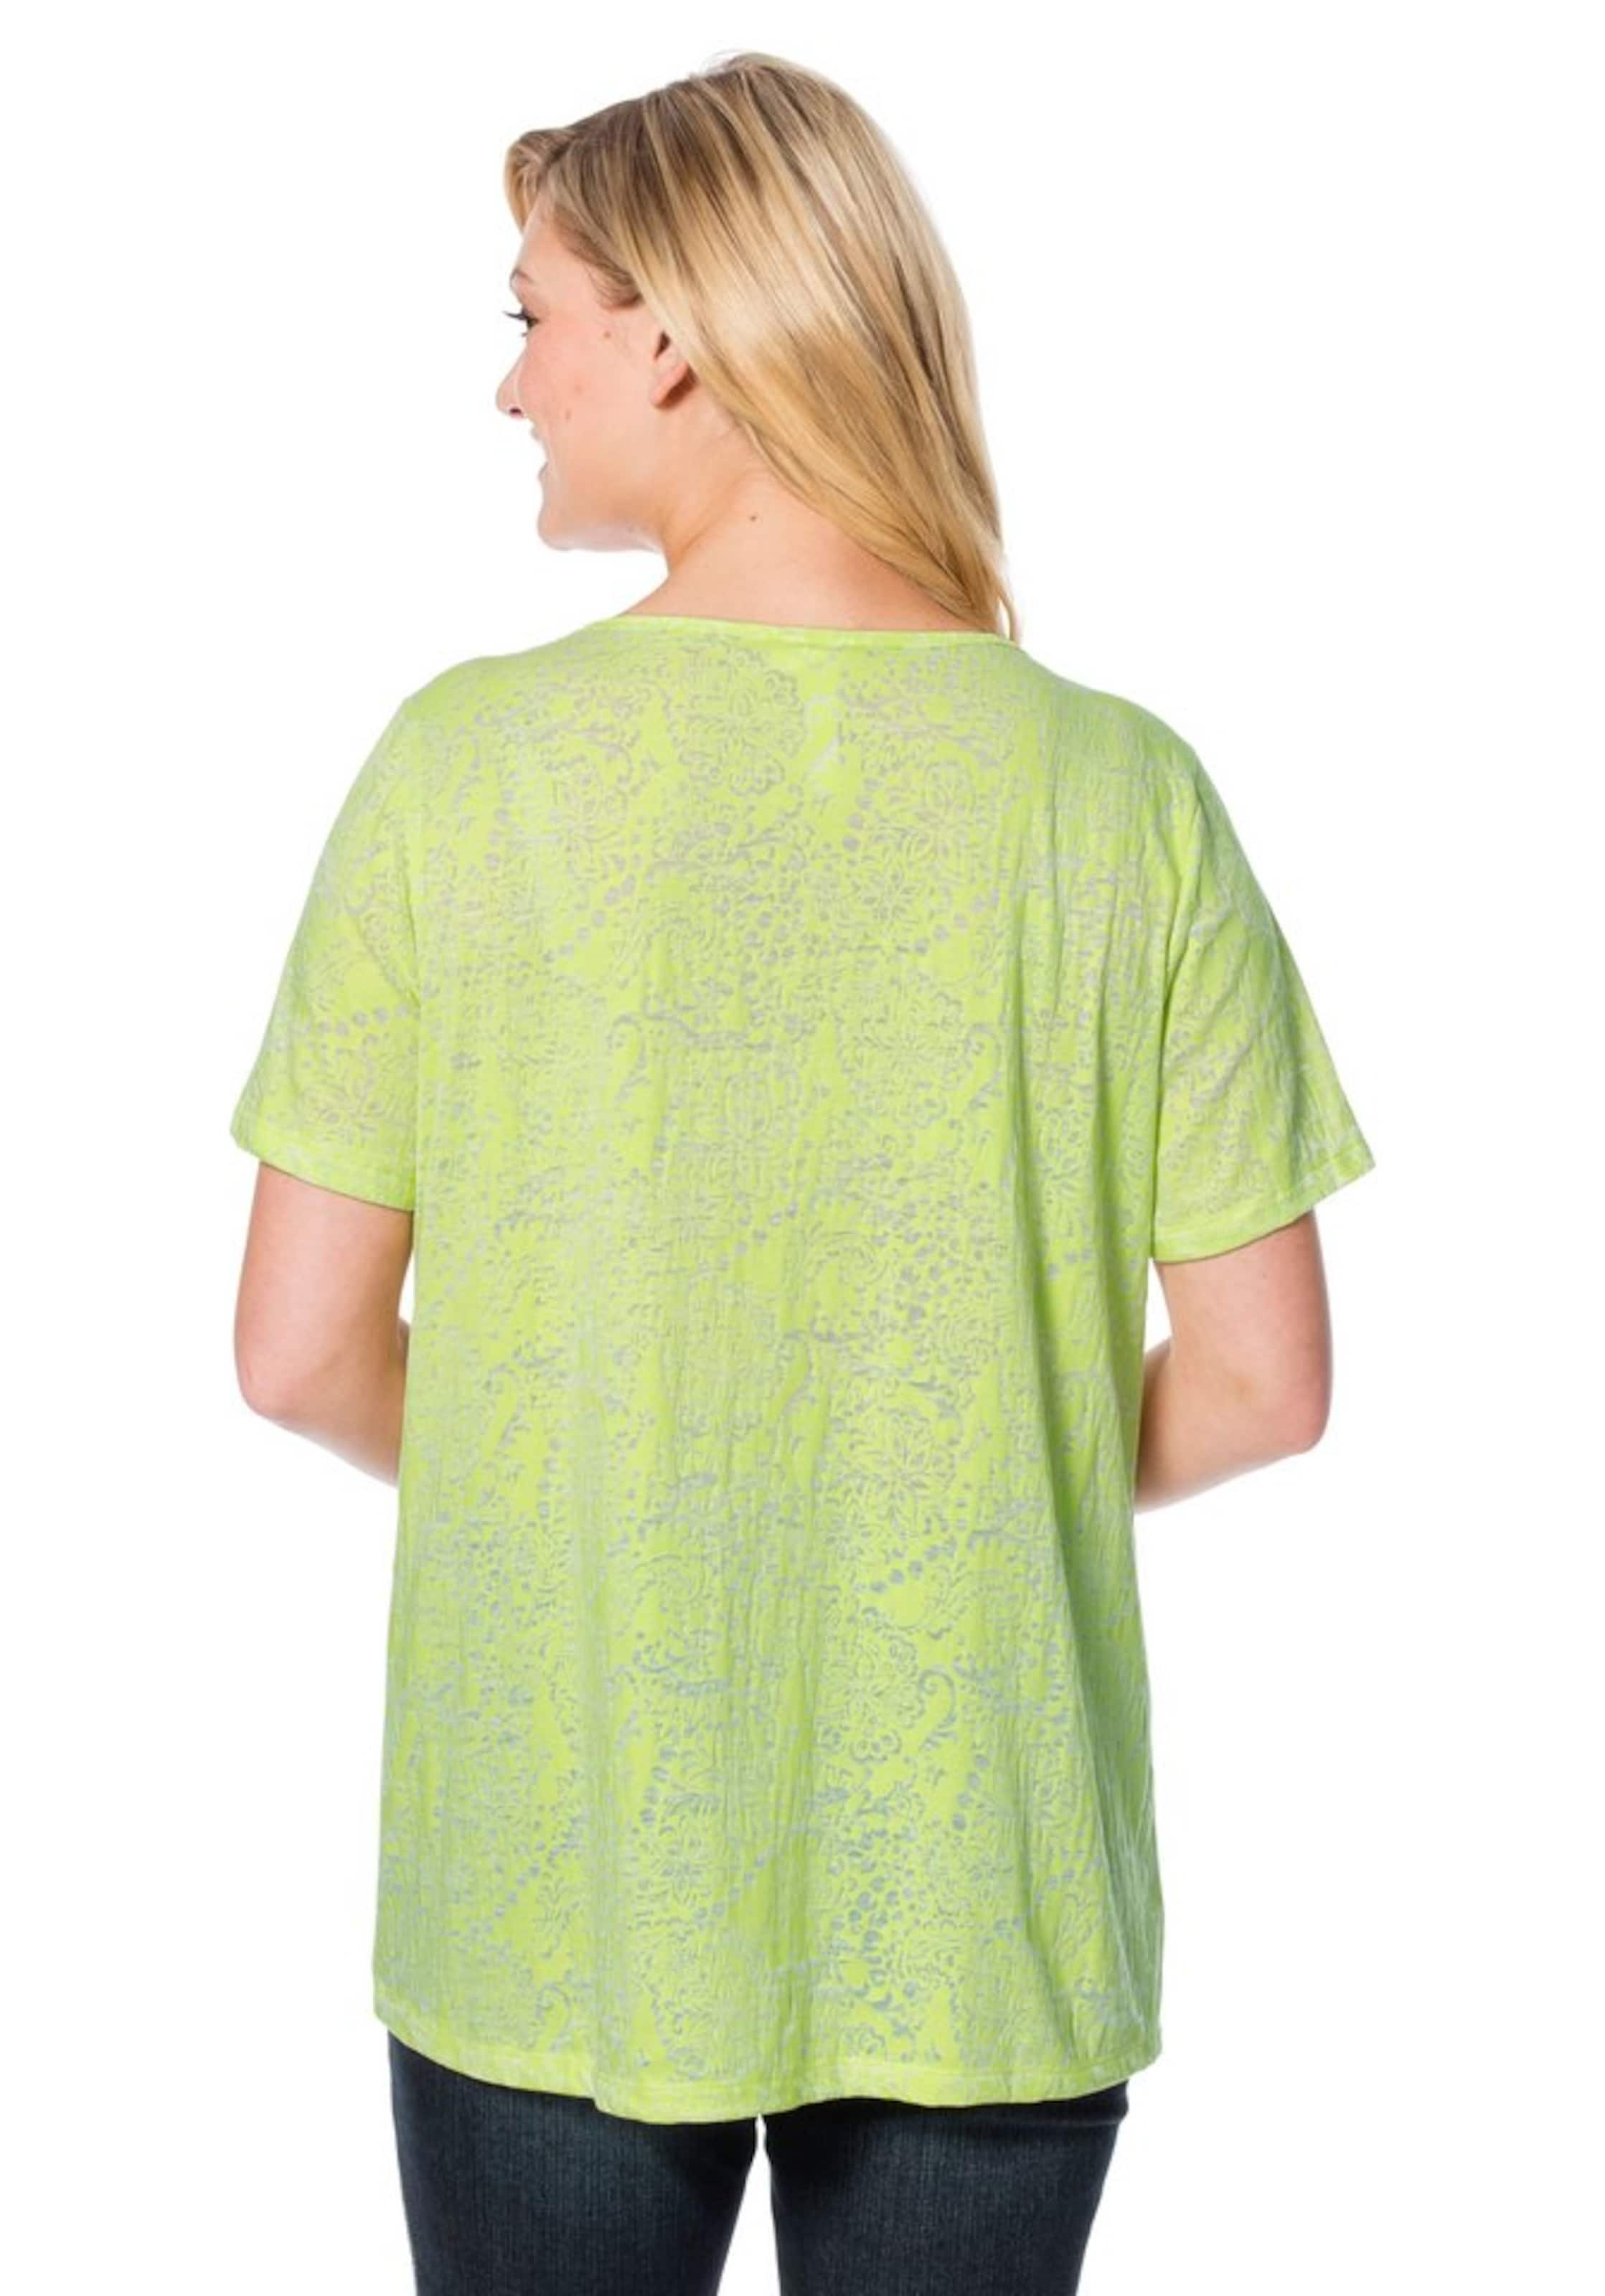 T Sheego shirt Limette T In shirt Sheego Limette In Sheego sdrtQh